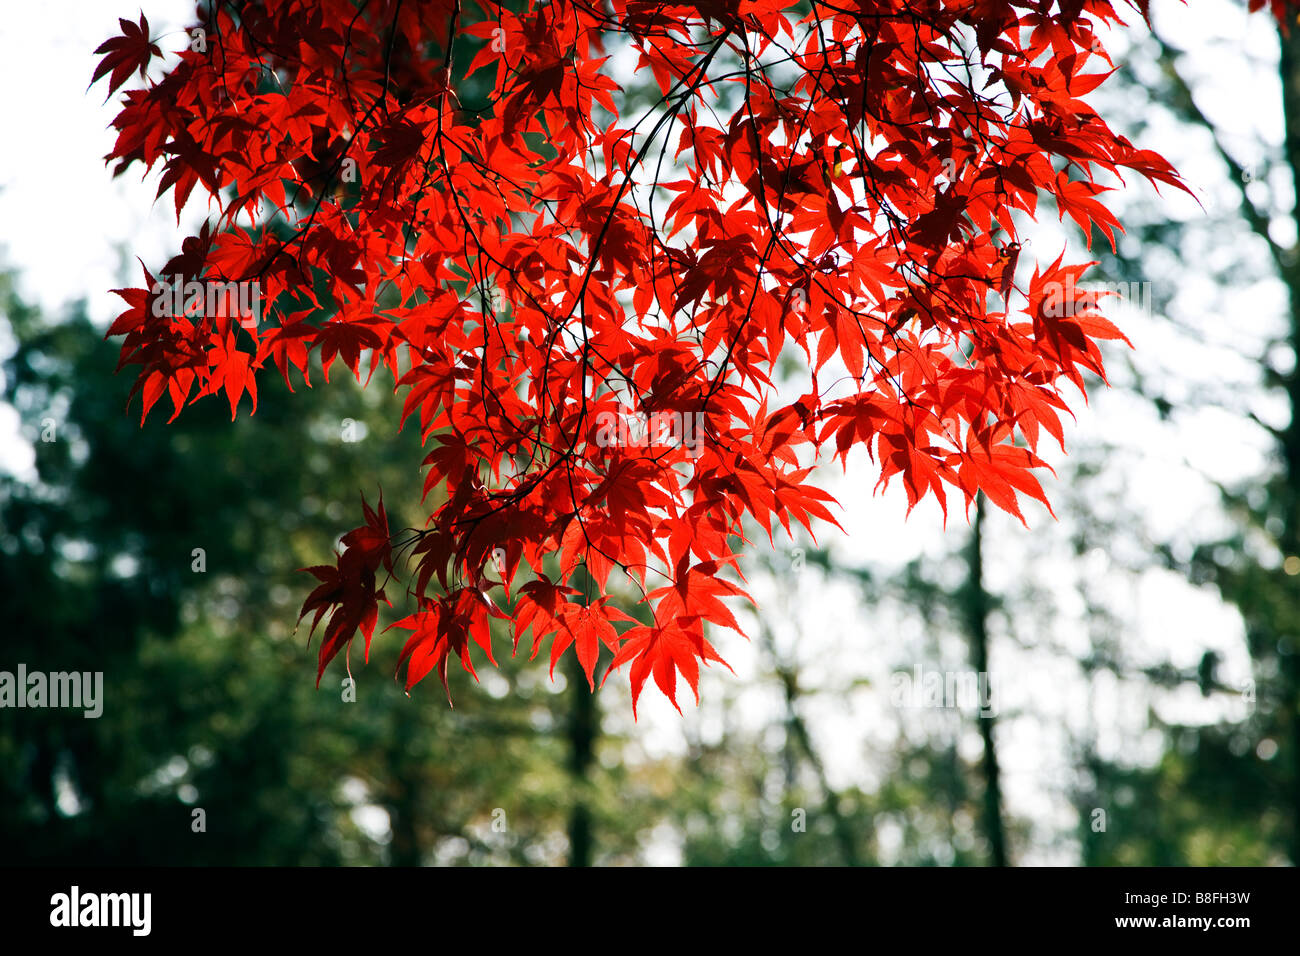 Bright red leaves of a Japanese Maple tree backlit by the afternoon autumn sun - Stock Image